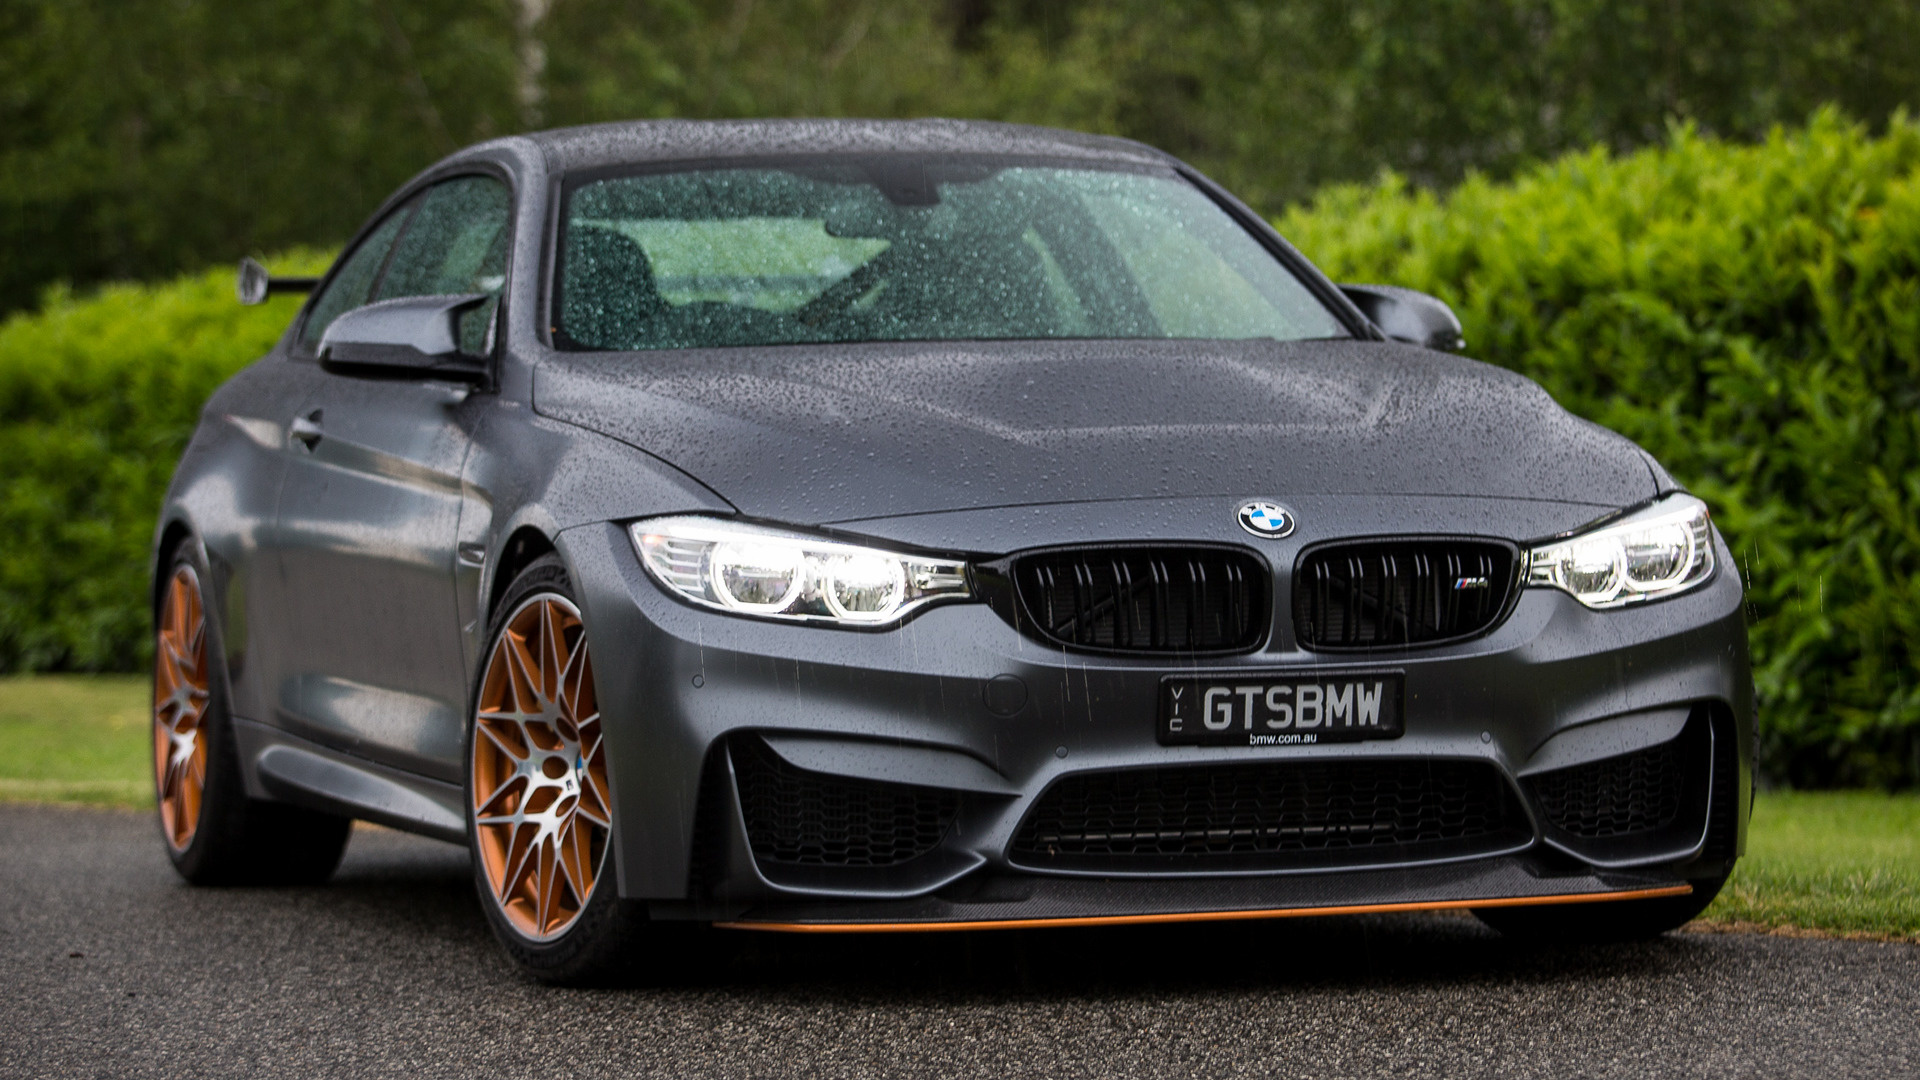 2016 Hyundai Genesis Coupe >> 2016 BMW M4 GTS Coupe (AU) - Wallpapers and HD Images